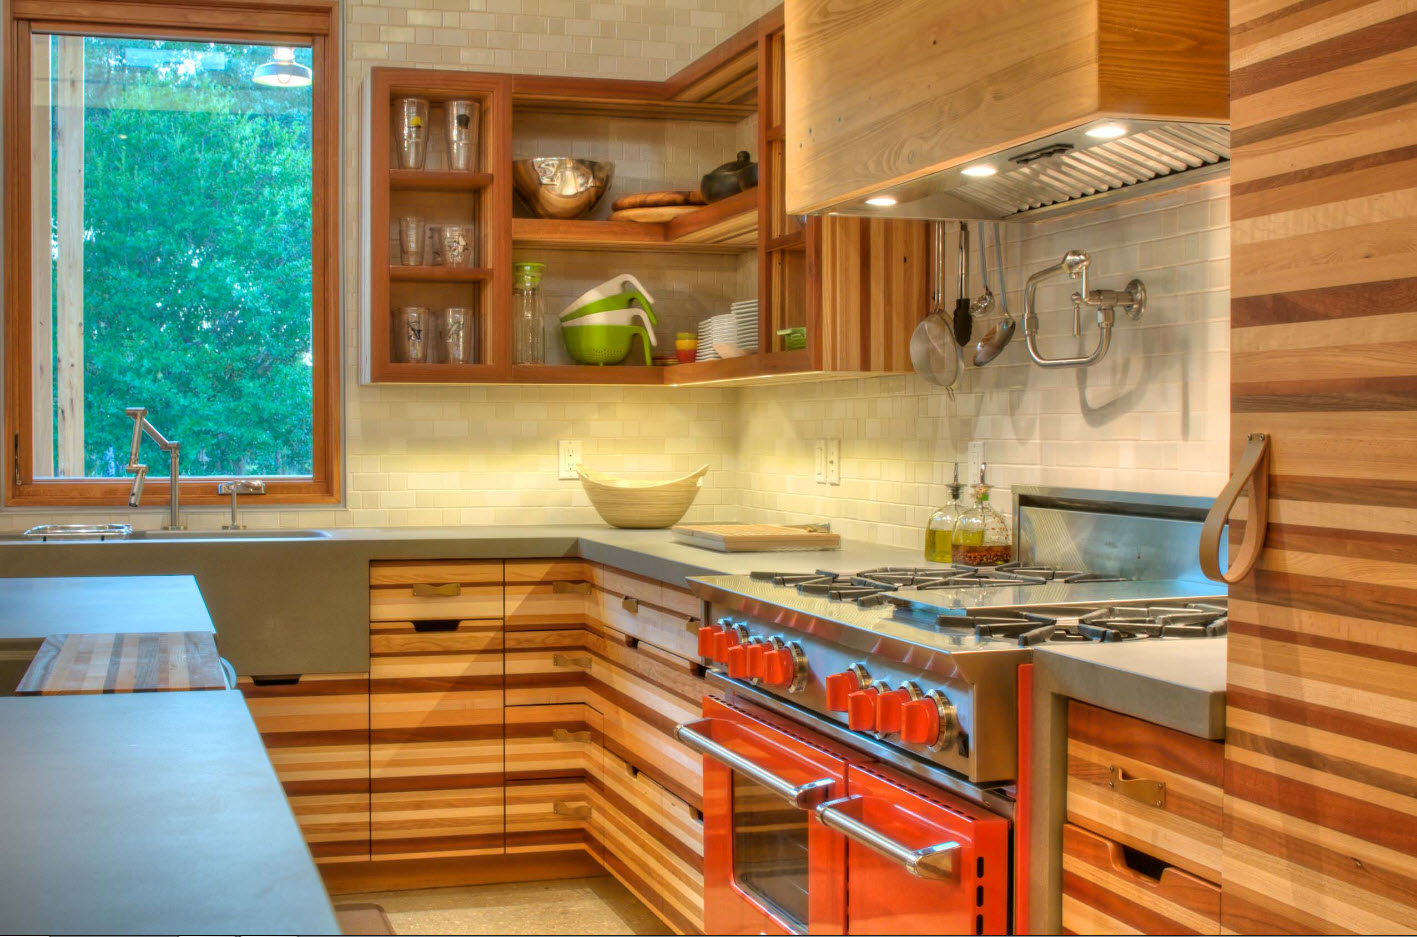 Unusually laminated kitchen furniture set with modern red hob facades